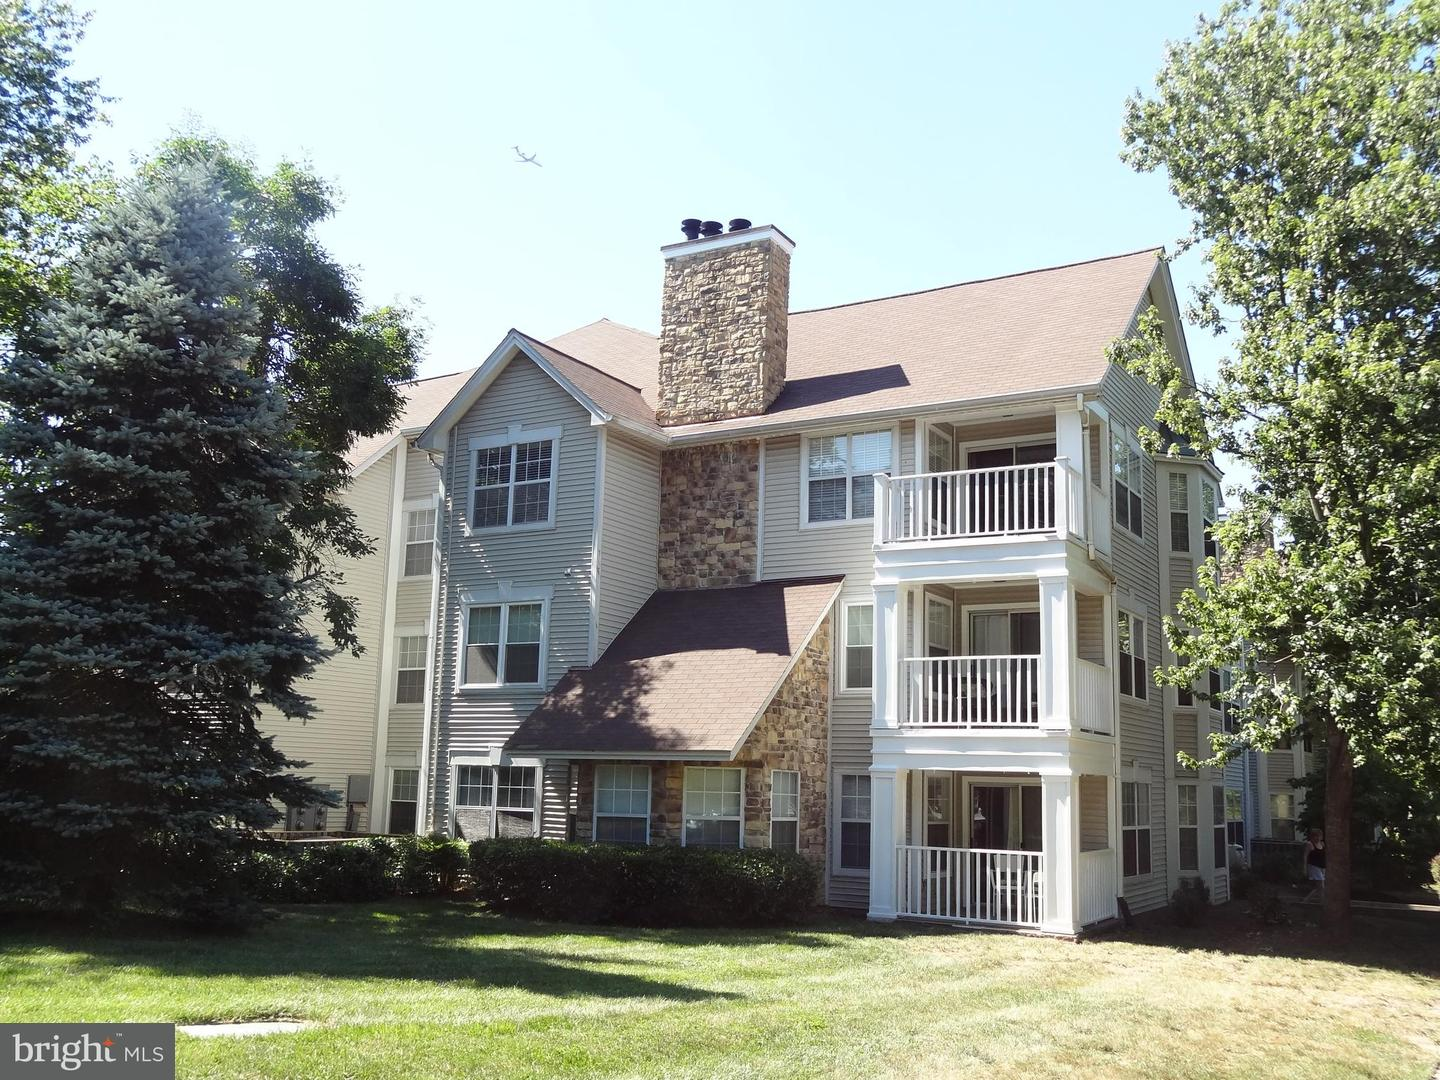 Single Family for Rent at WILLOUGHBYS RIDGE, 5612 Willoughby Newton Drive Centreville, Virginia 20120 United States